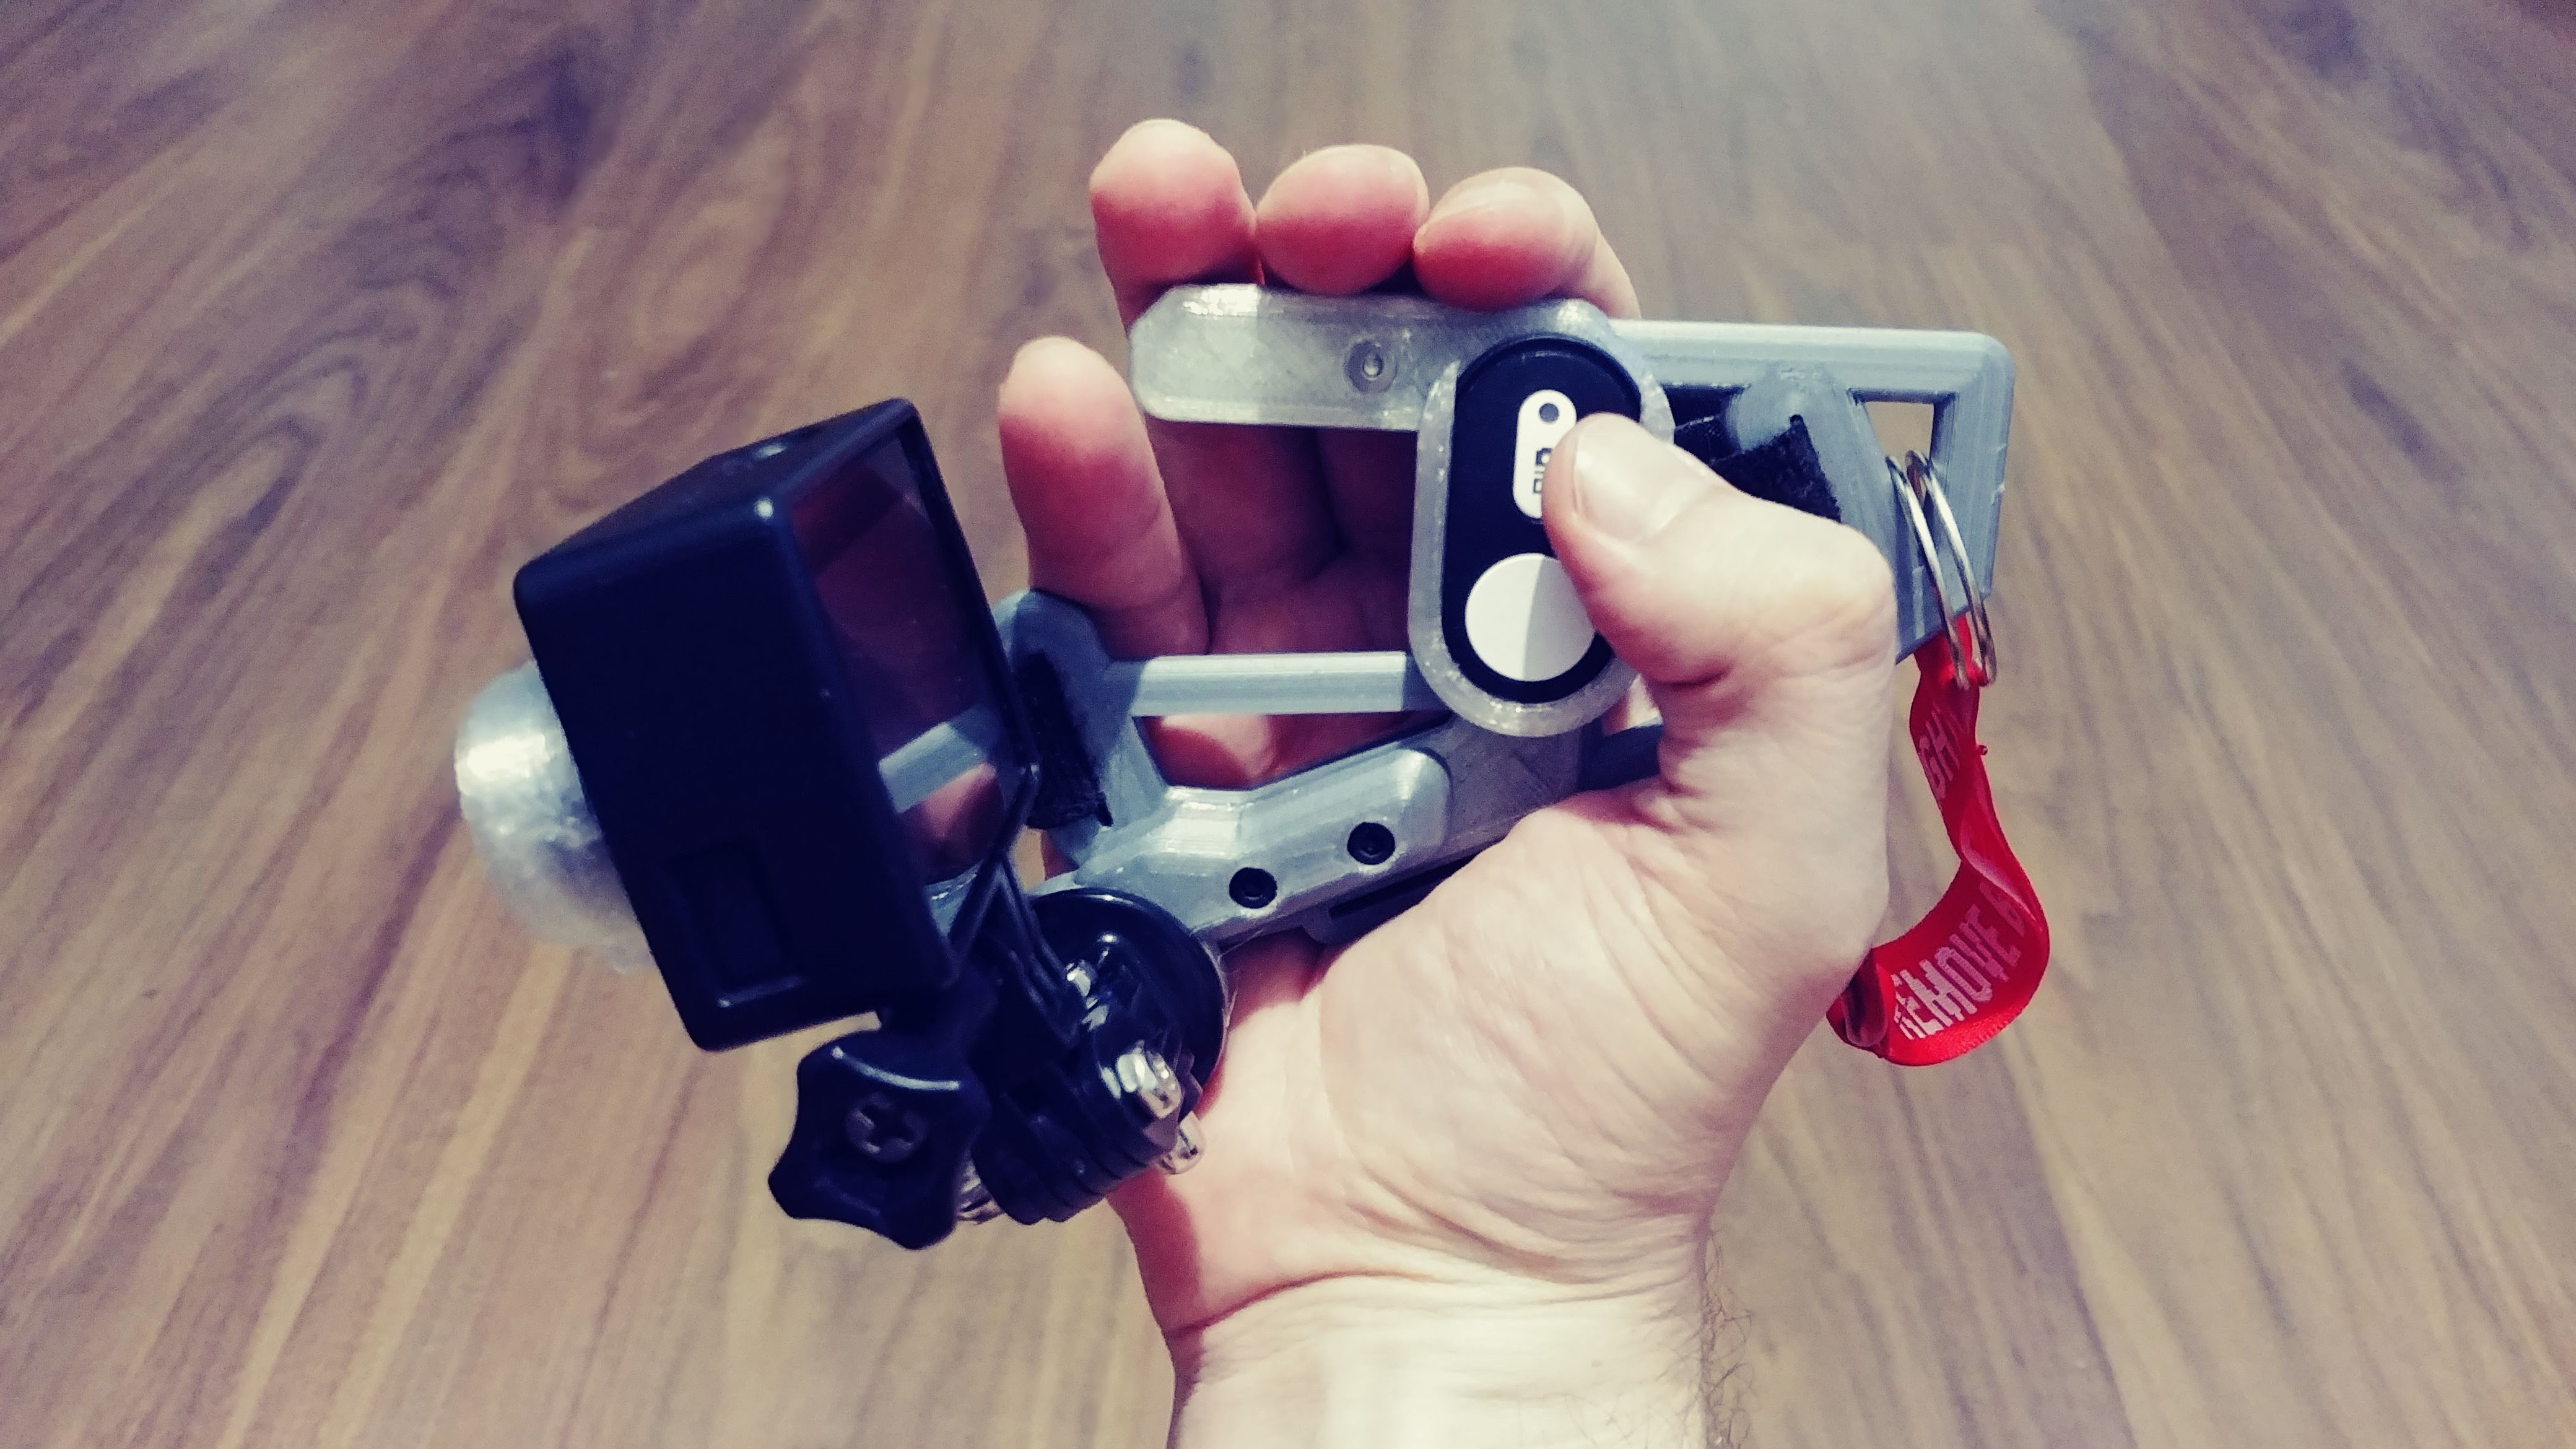 Handy Pro (Action cam to Camcorder)